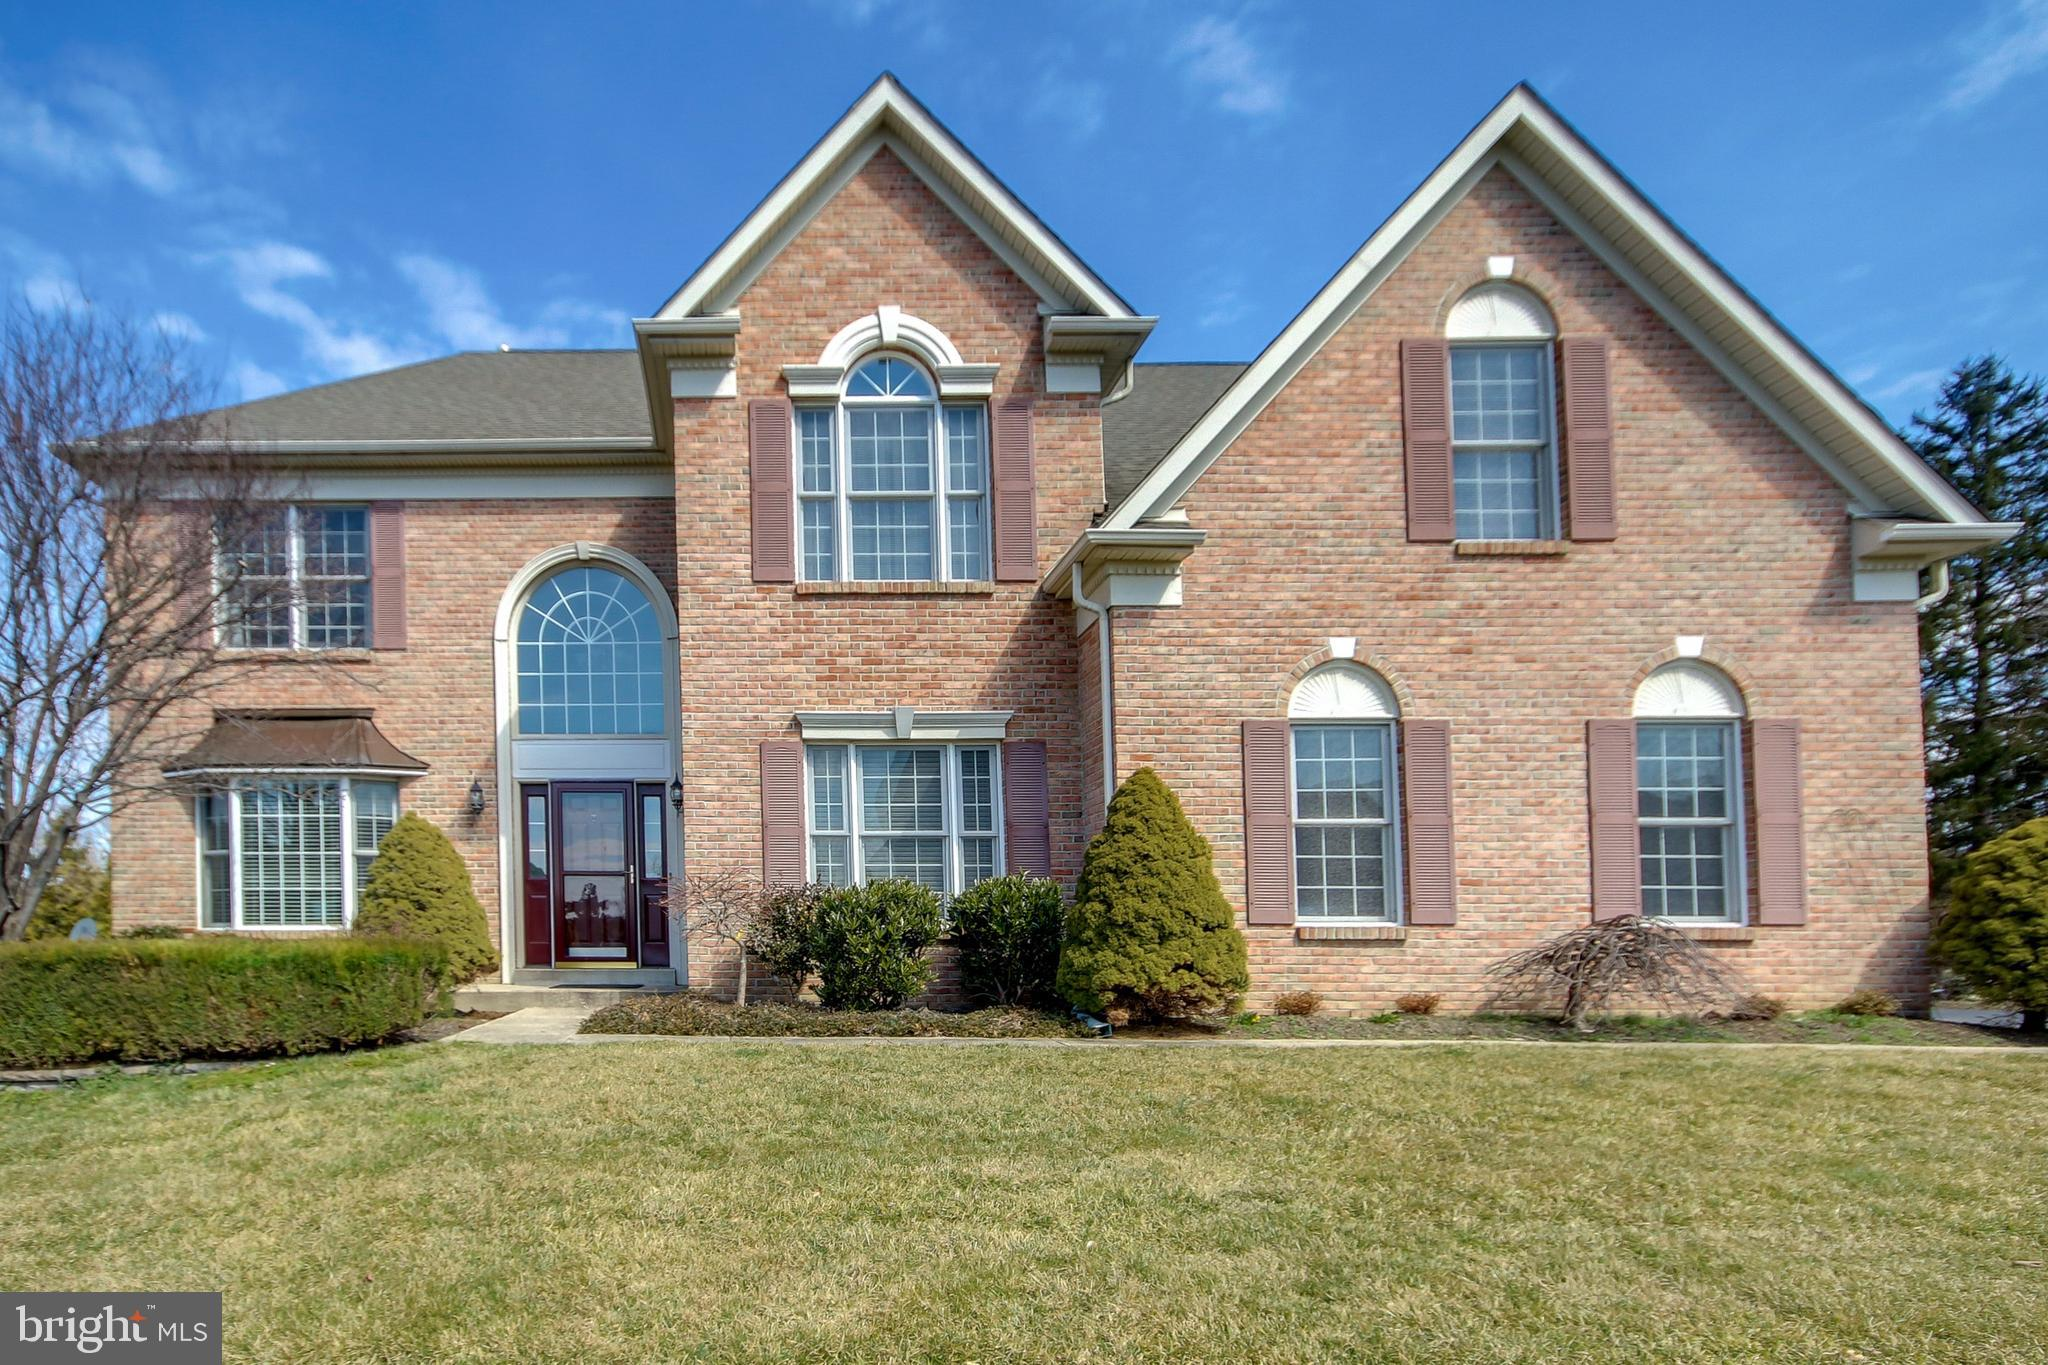 728 MARCUS CIRCLE, WARRINGTON, PA 18976